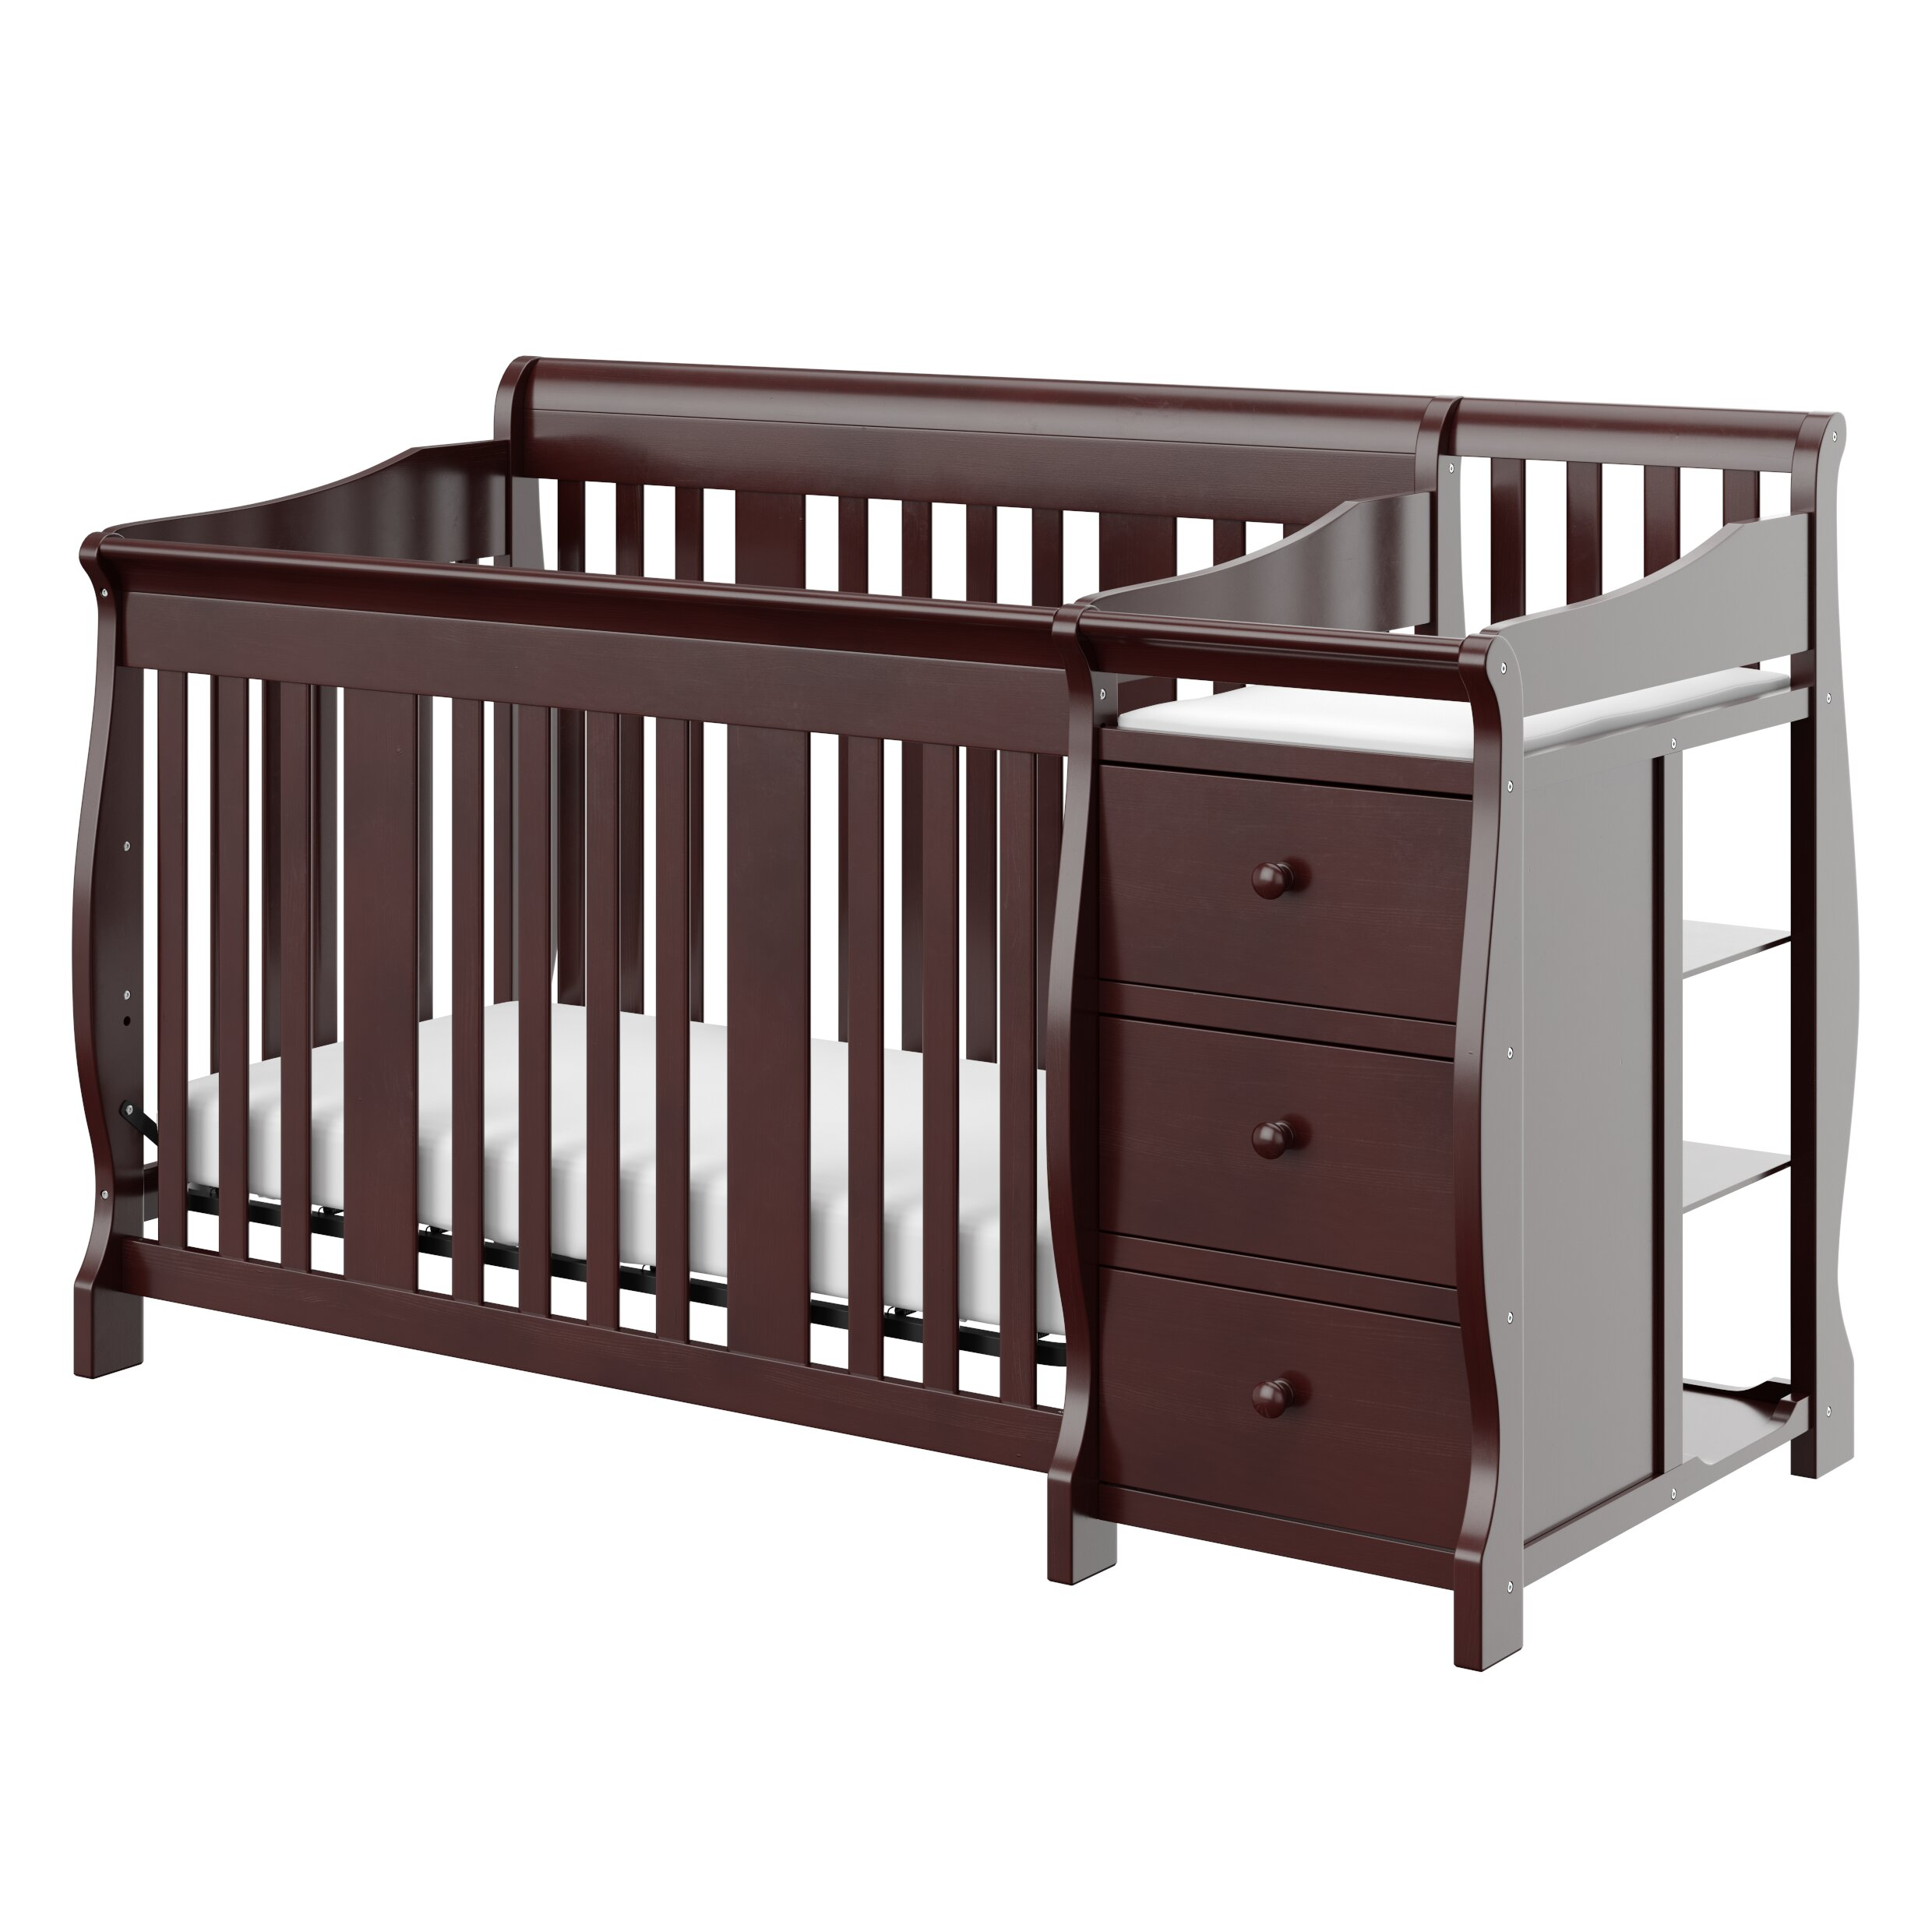 Espresso crib for sale - Storkcraft Portofino 4 In 1 Convertible Crib